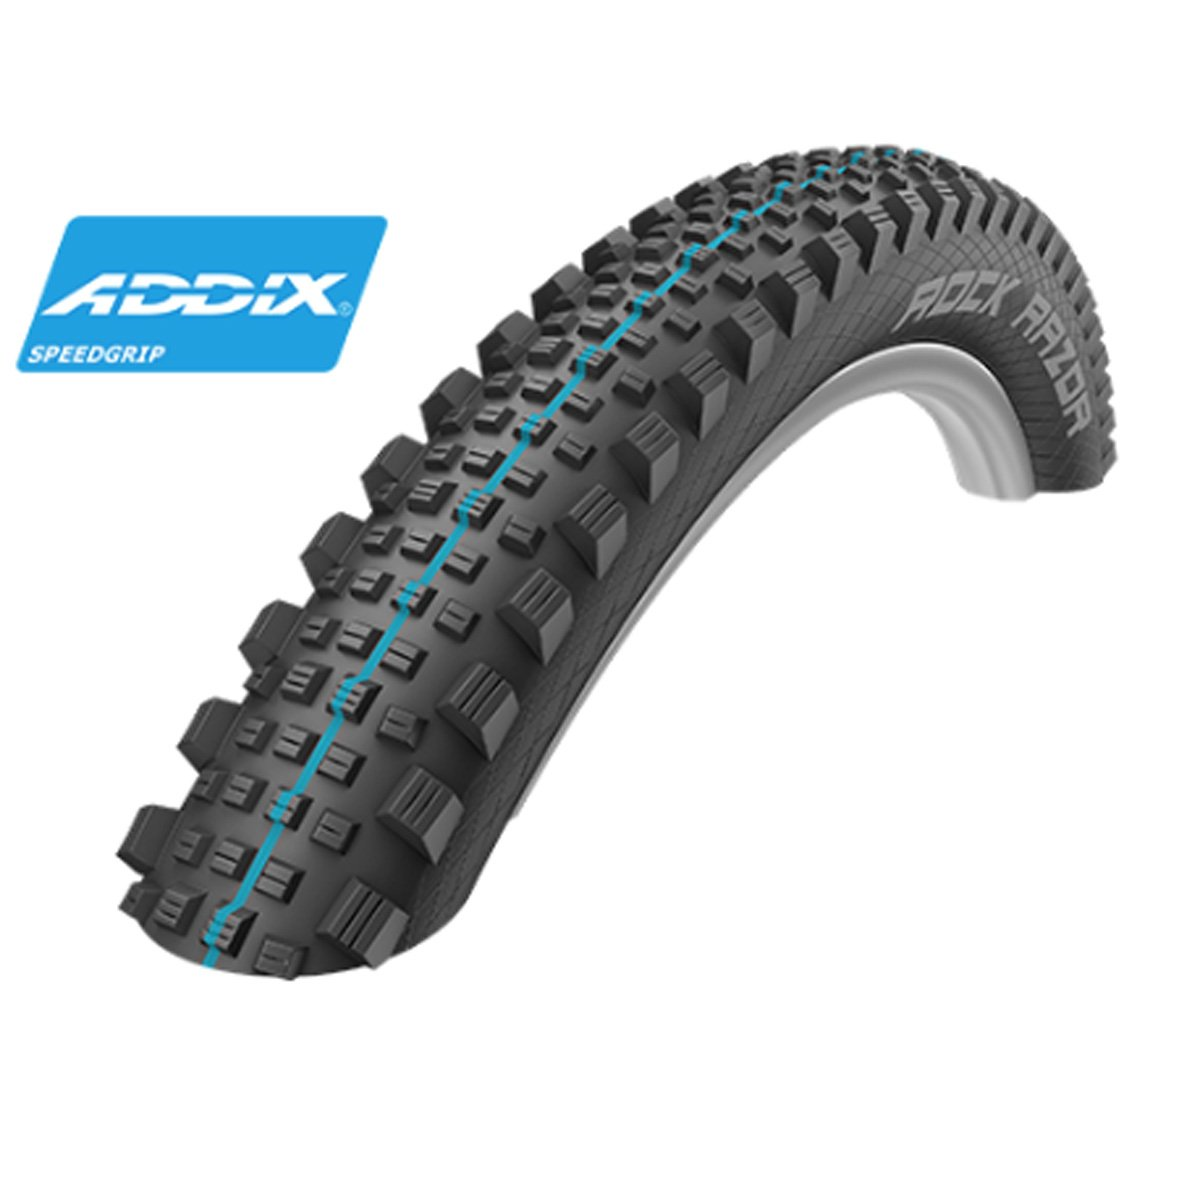 Schwalbe Rock Razor HS 452 Addix SpeedGrip Snakeskin TL Easy Apex Mountain自転車タイヤ – 折りたたみ B0777MKT83ブラック 27.5 x 2.60